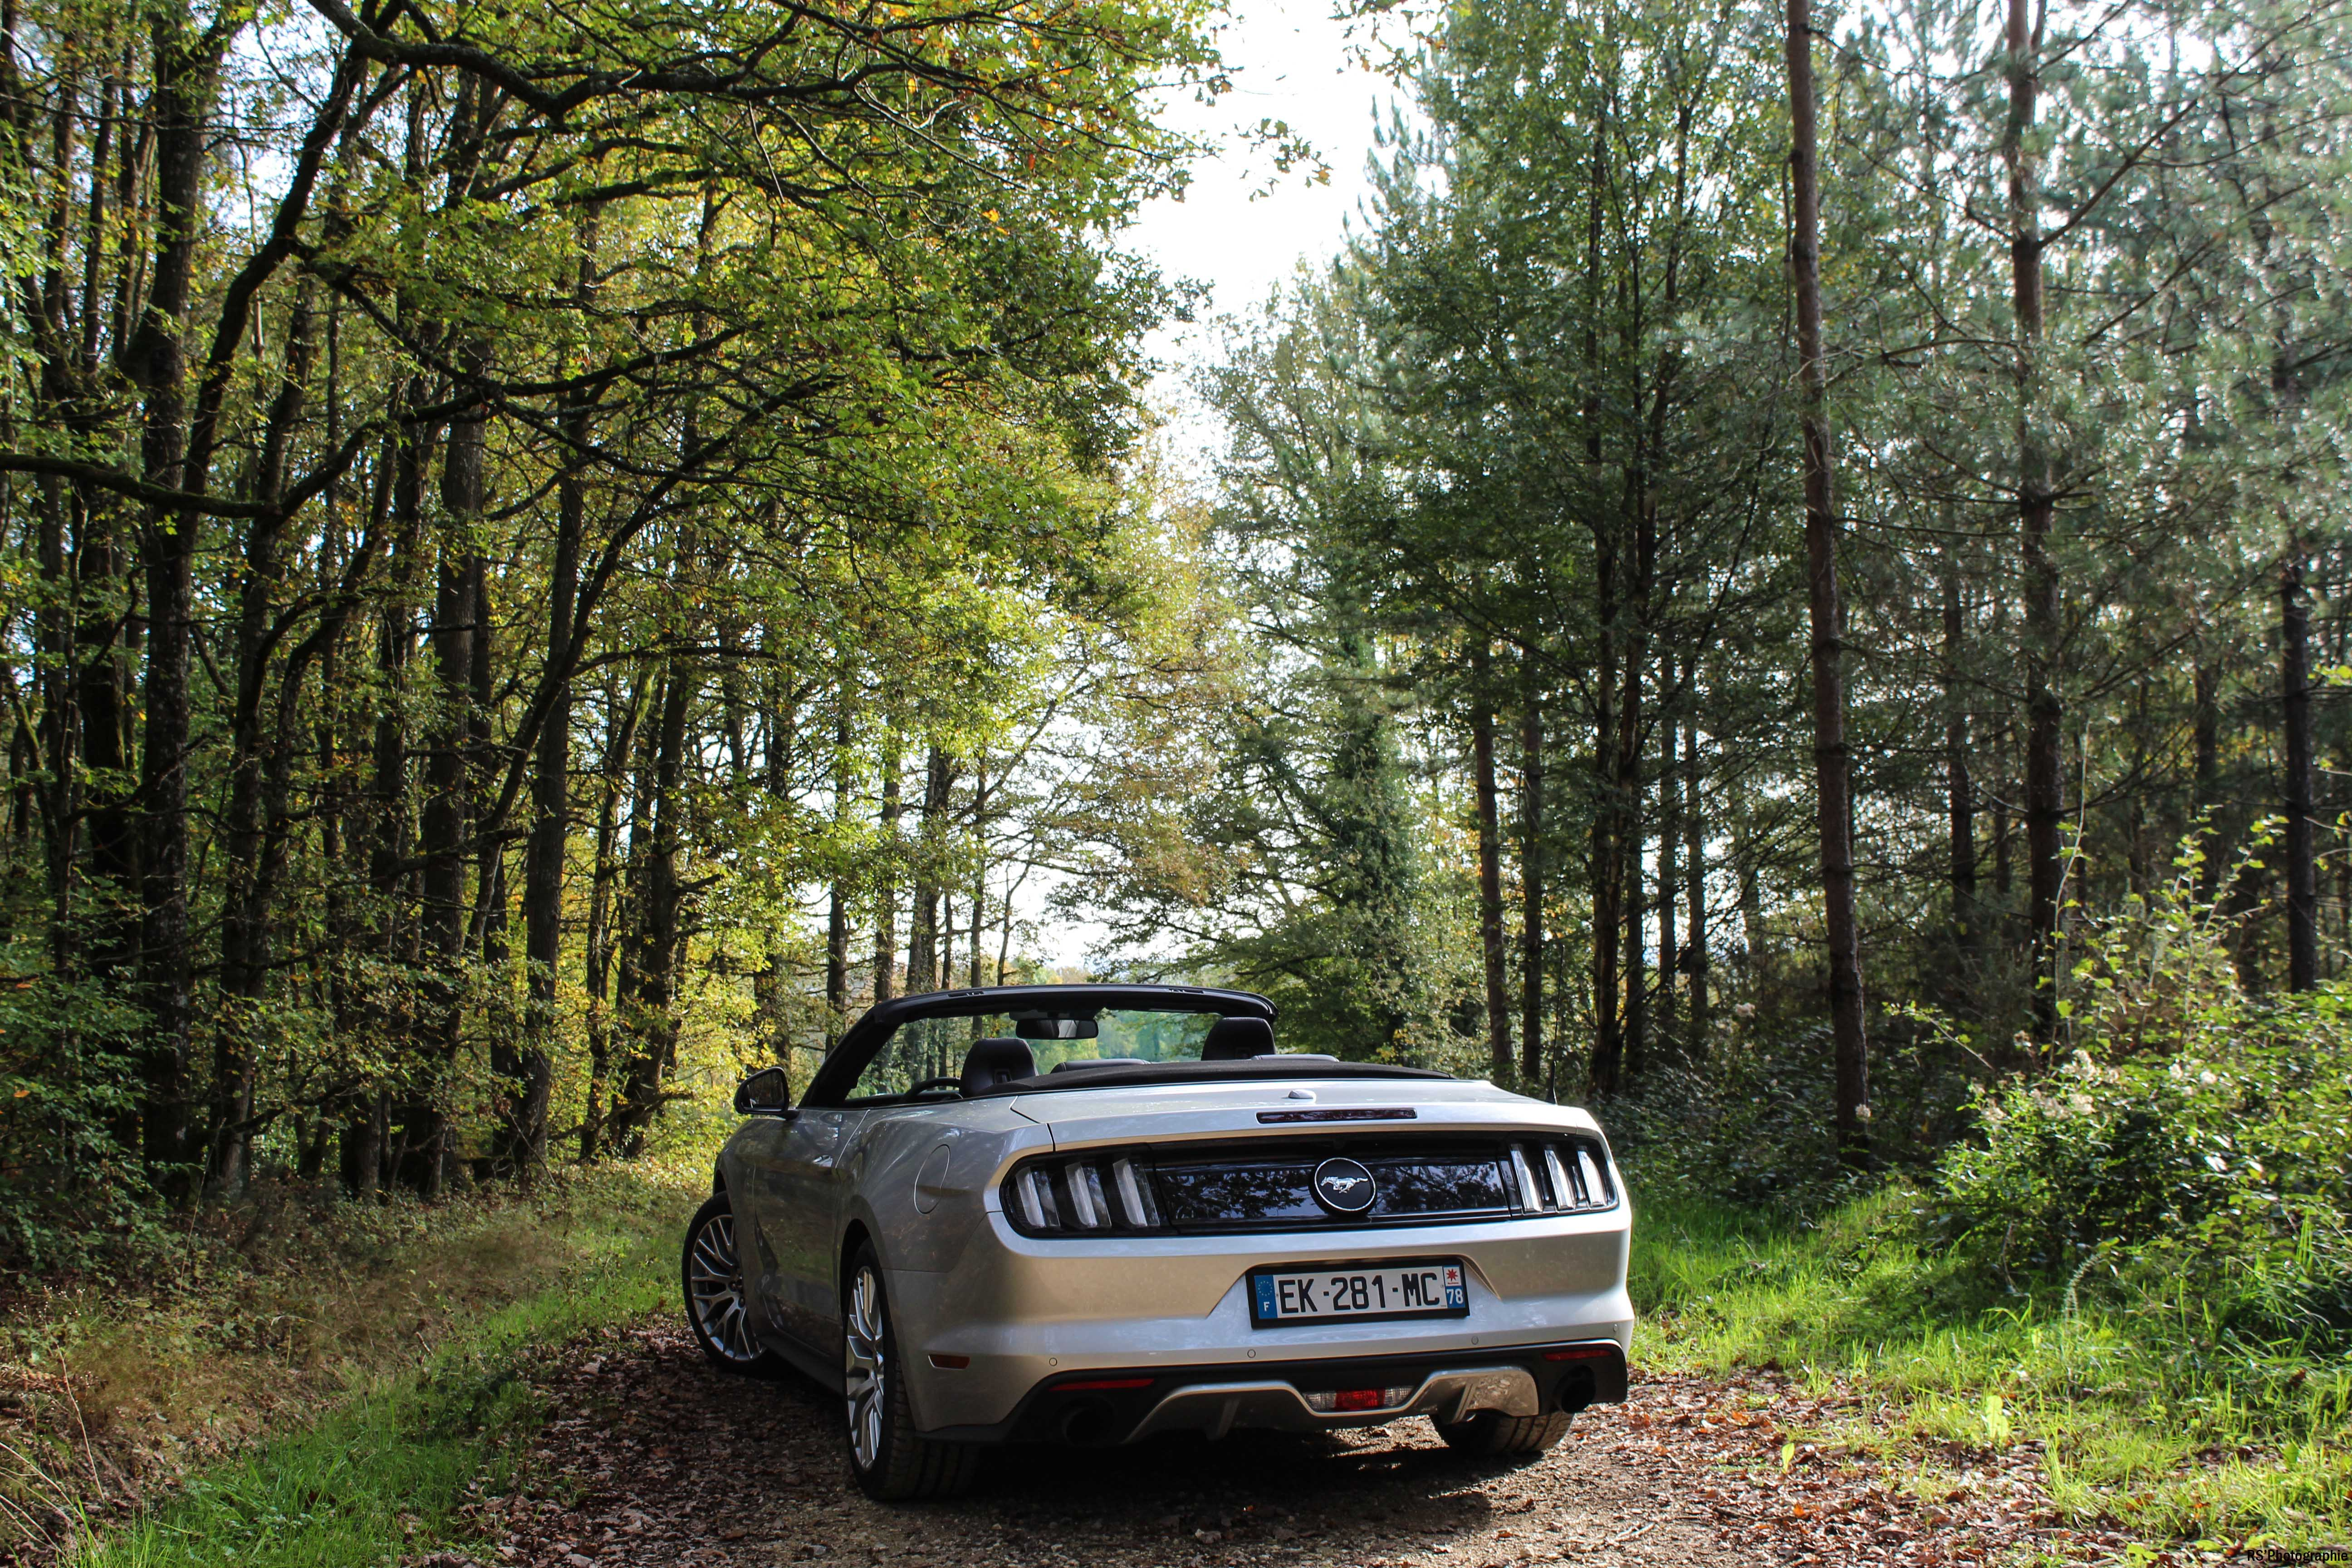 fordmustangeconvertible47-ford-mustang-convertible-ecoboost-arriere-rear-Arnaud Demasier-RSPhotographie